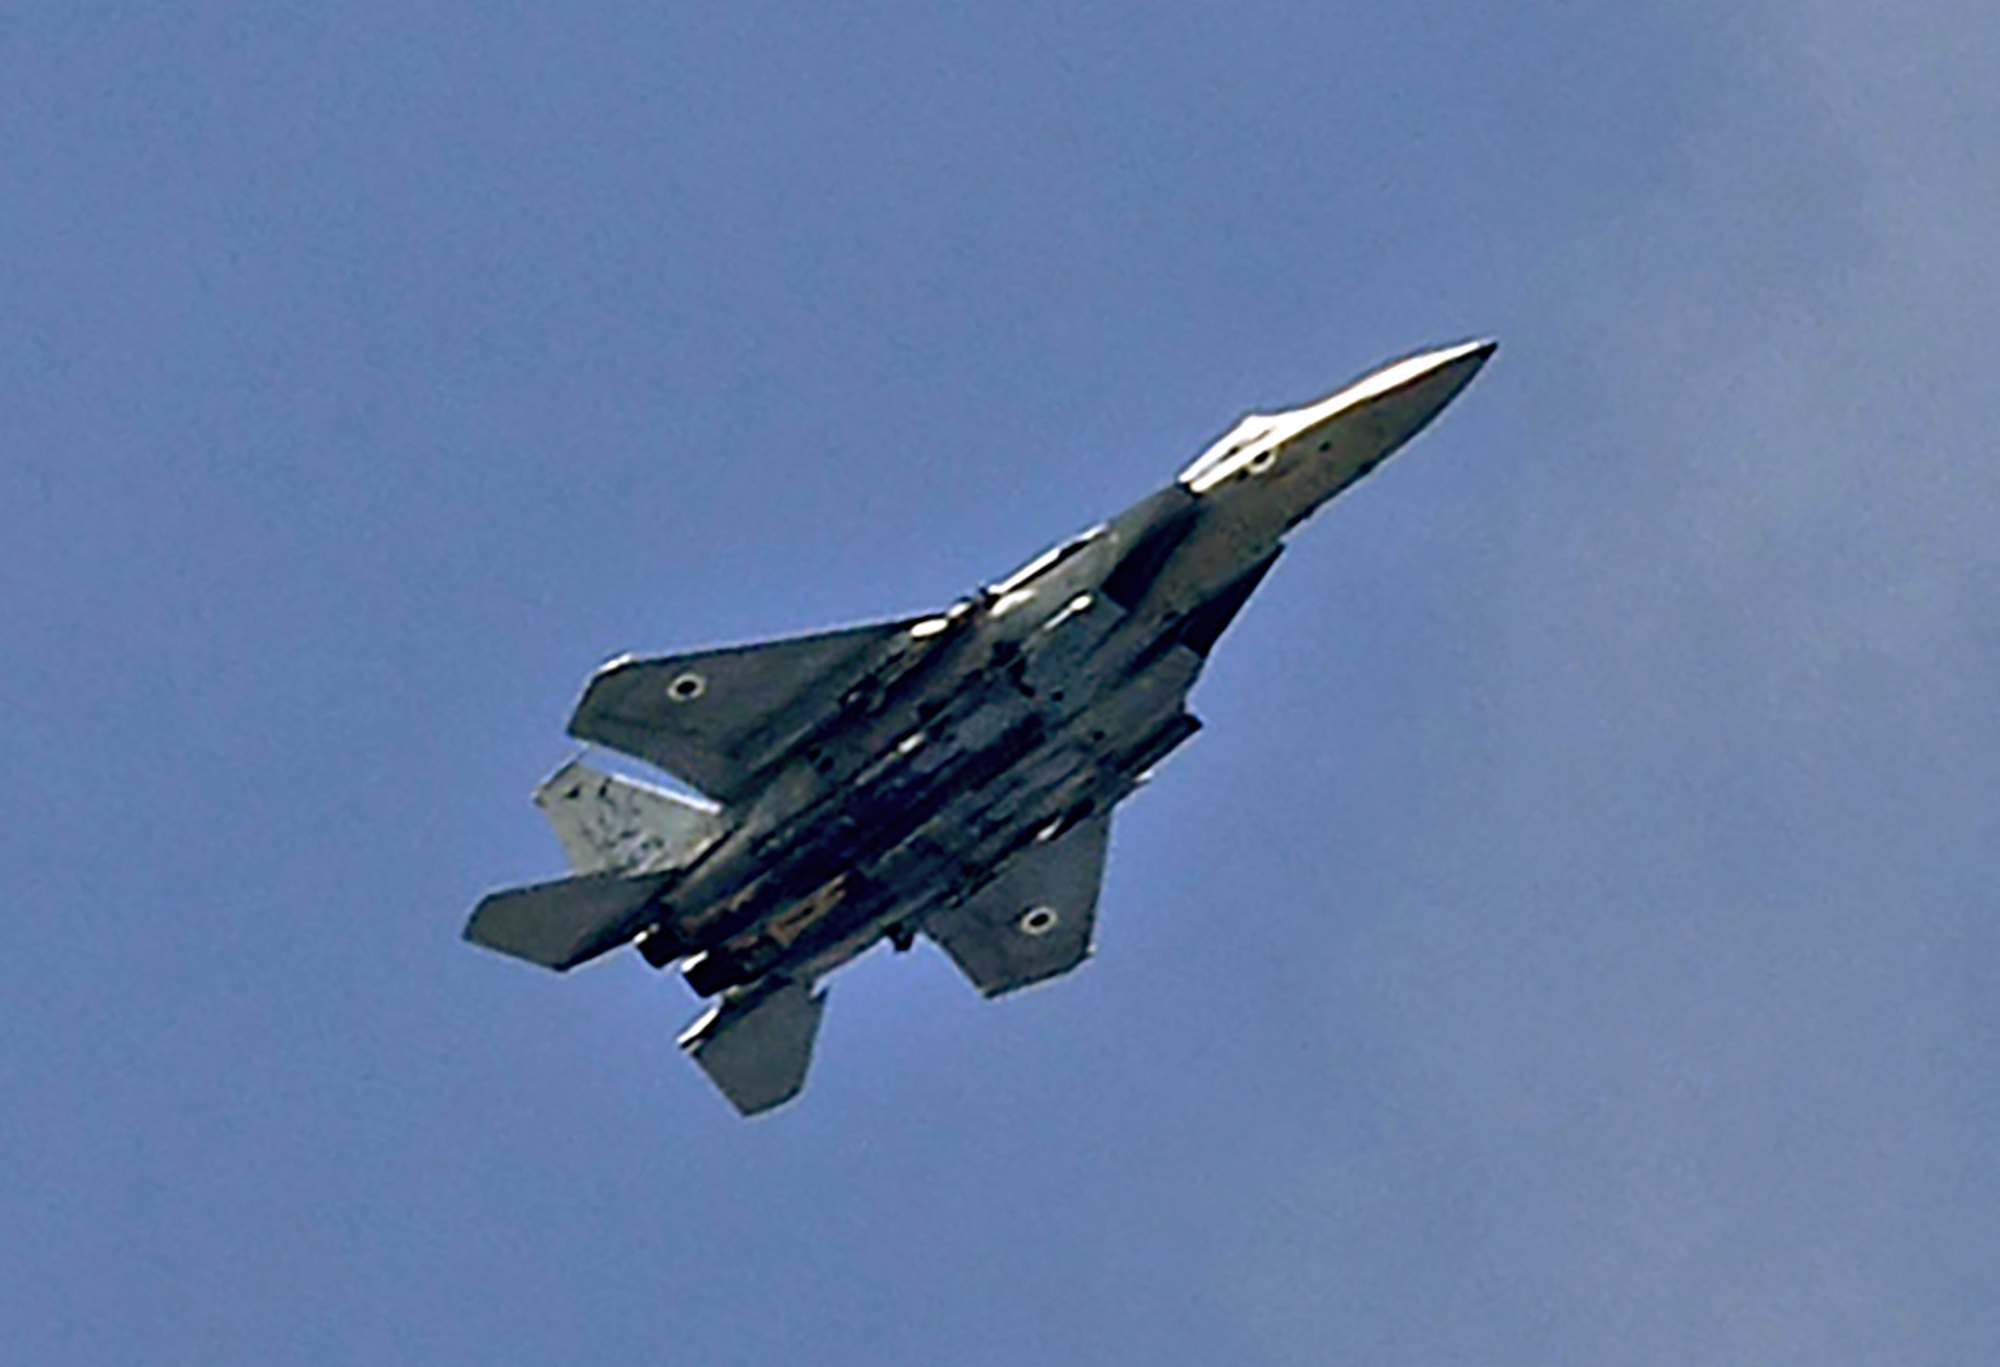 An Israeli army F-15 figher jet flies above the southern city of Ashkelon, Israel after conducting an air strike on the Gaza Strip on Wednesday. (Jack Guez/AFP via Getty Images)